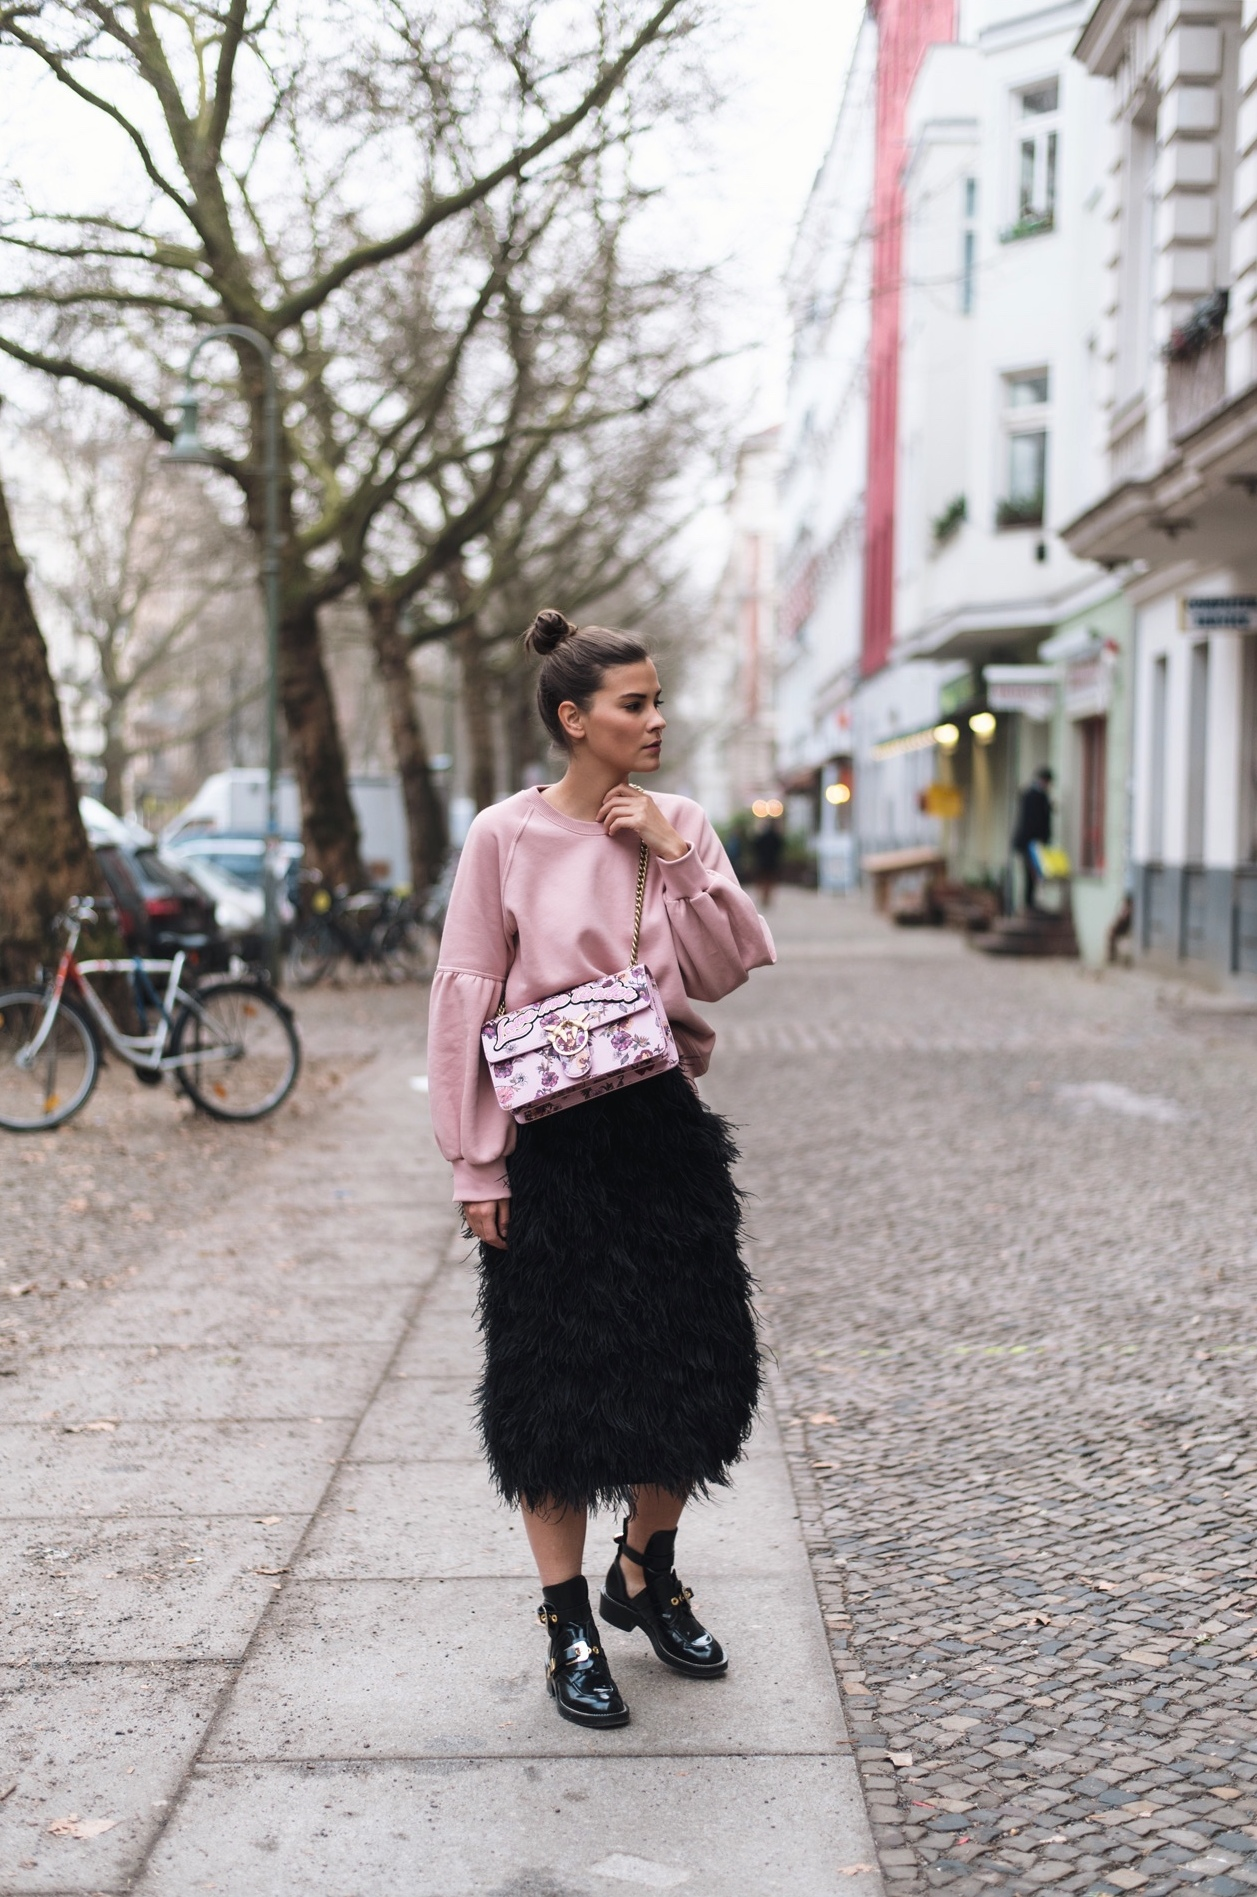 german-fashion-influencer-nina-schwichtenberg-fashiioncarpet